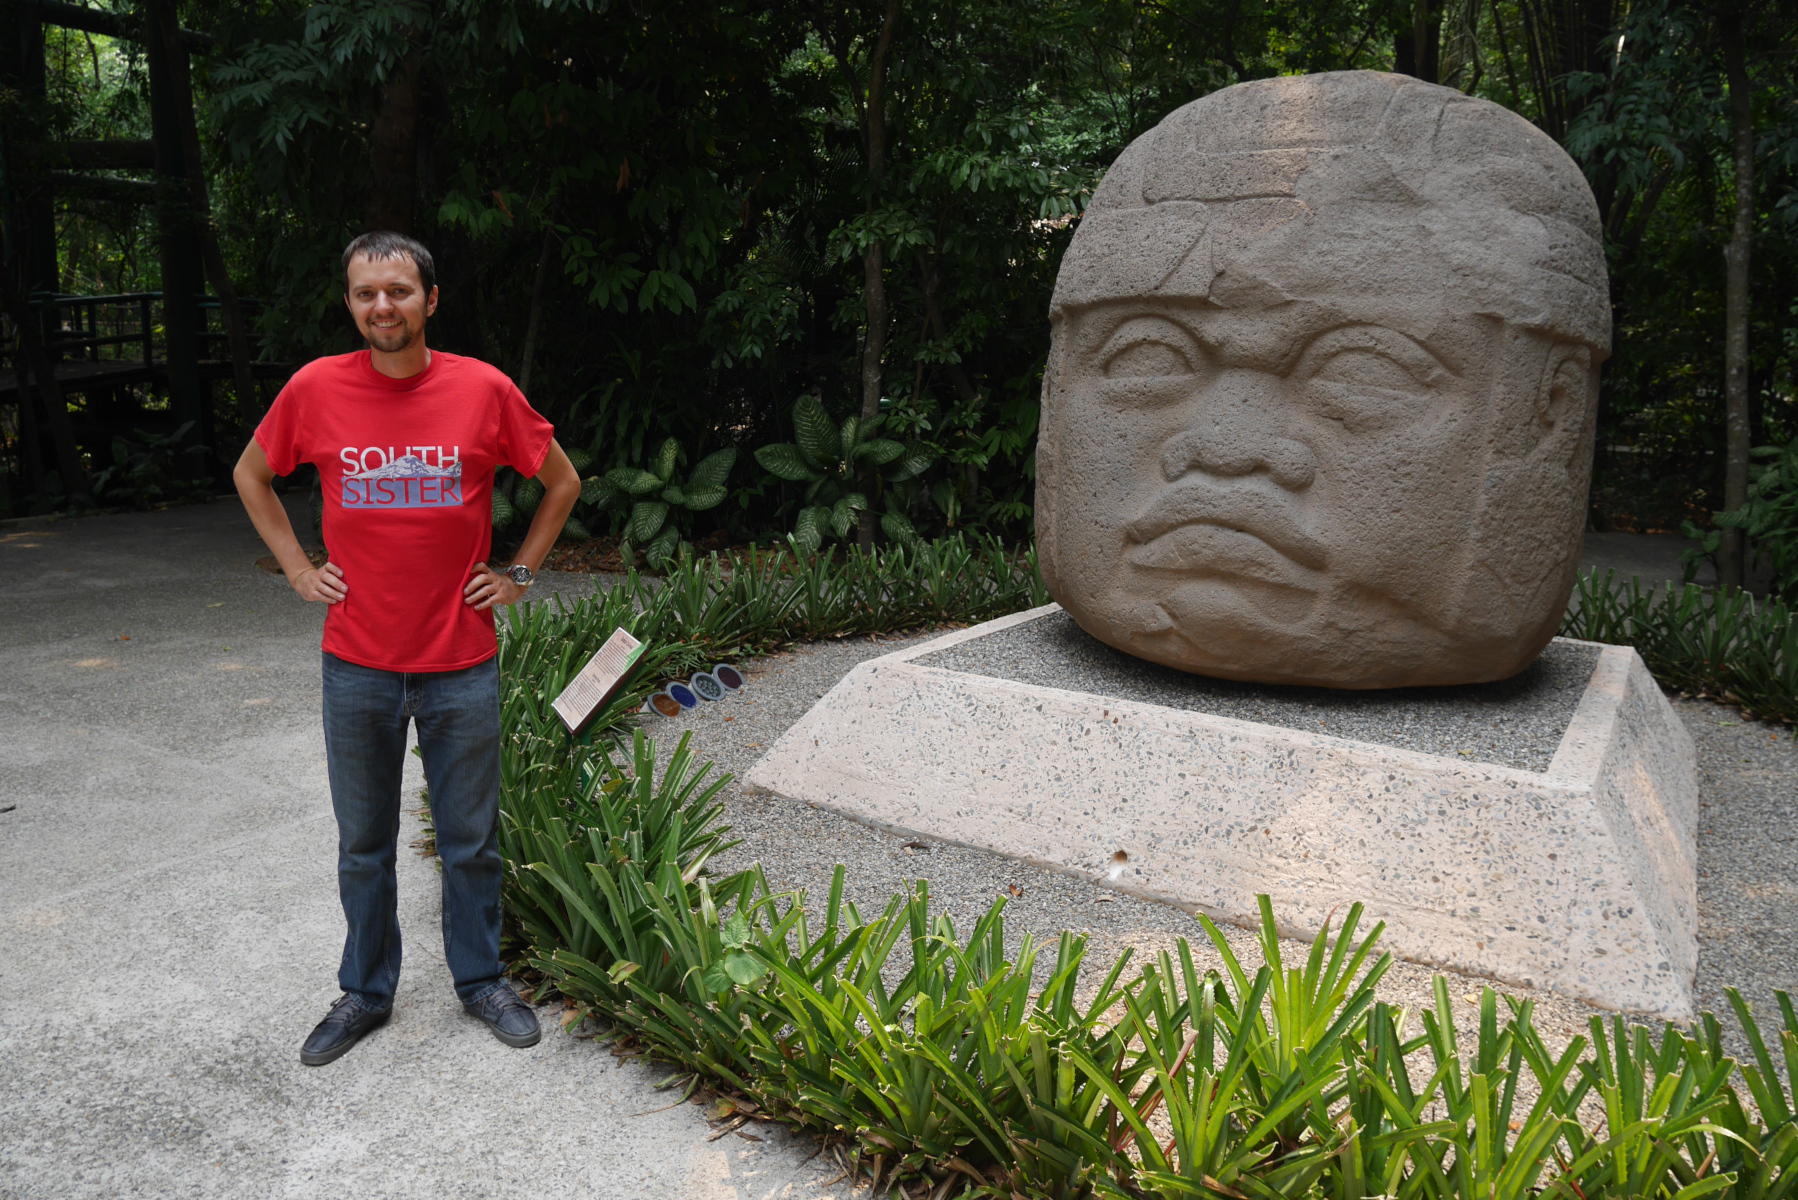 With Colossal Head No. 1 at Parque Museo La Venta, Villahermosa, Tabasco, southern Mexico.